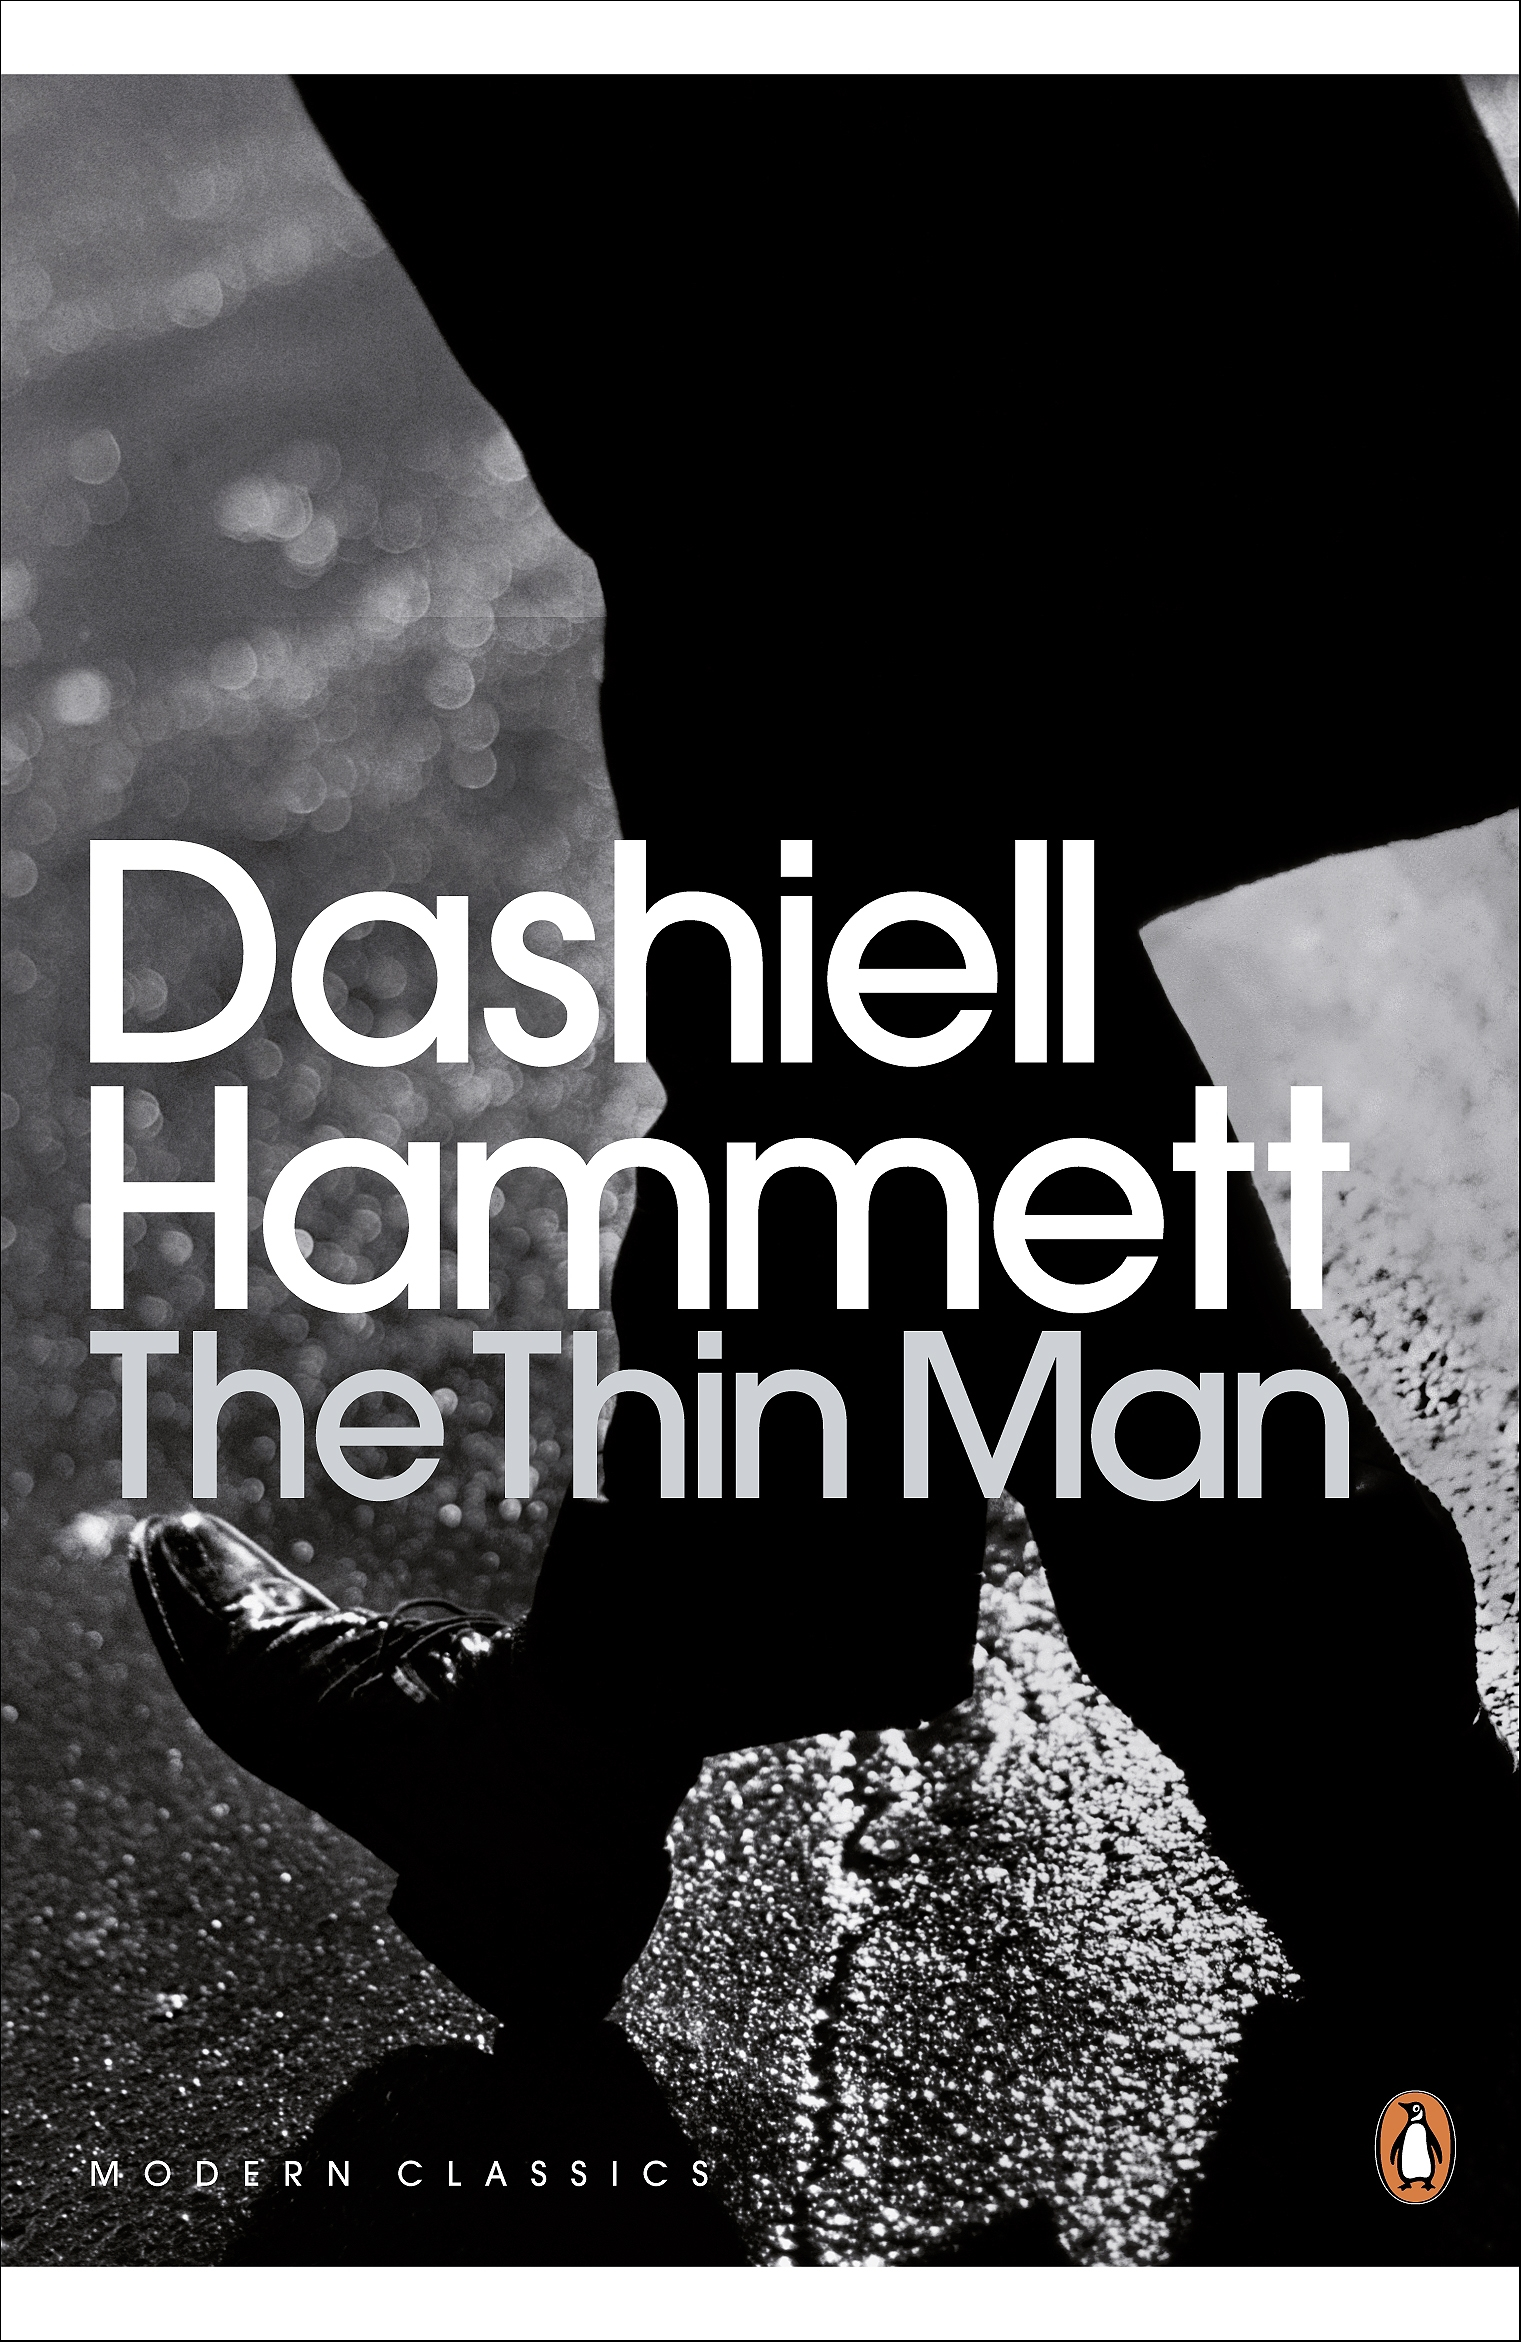 The Thin Man Dashiell Hammett.jpg